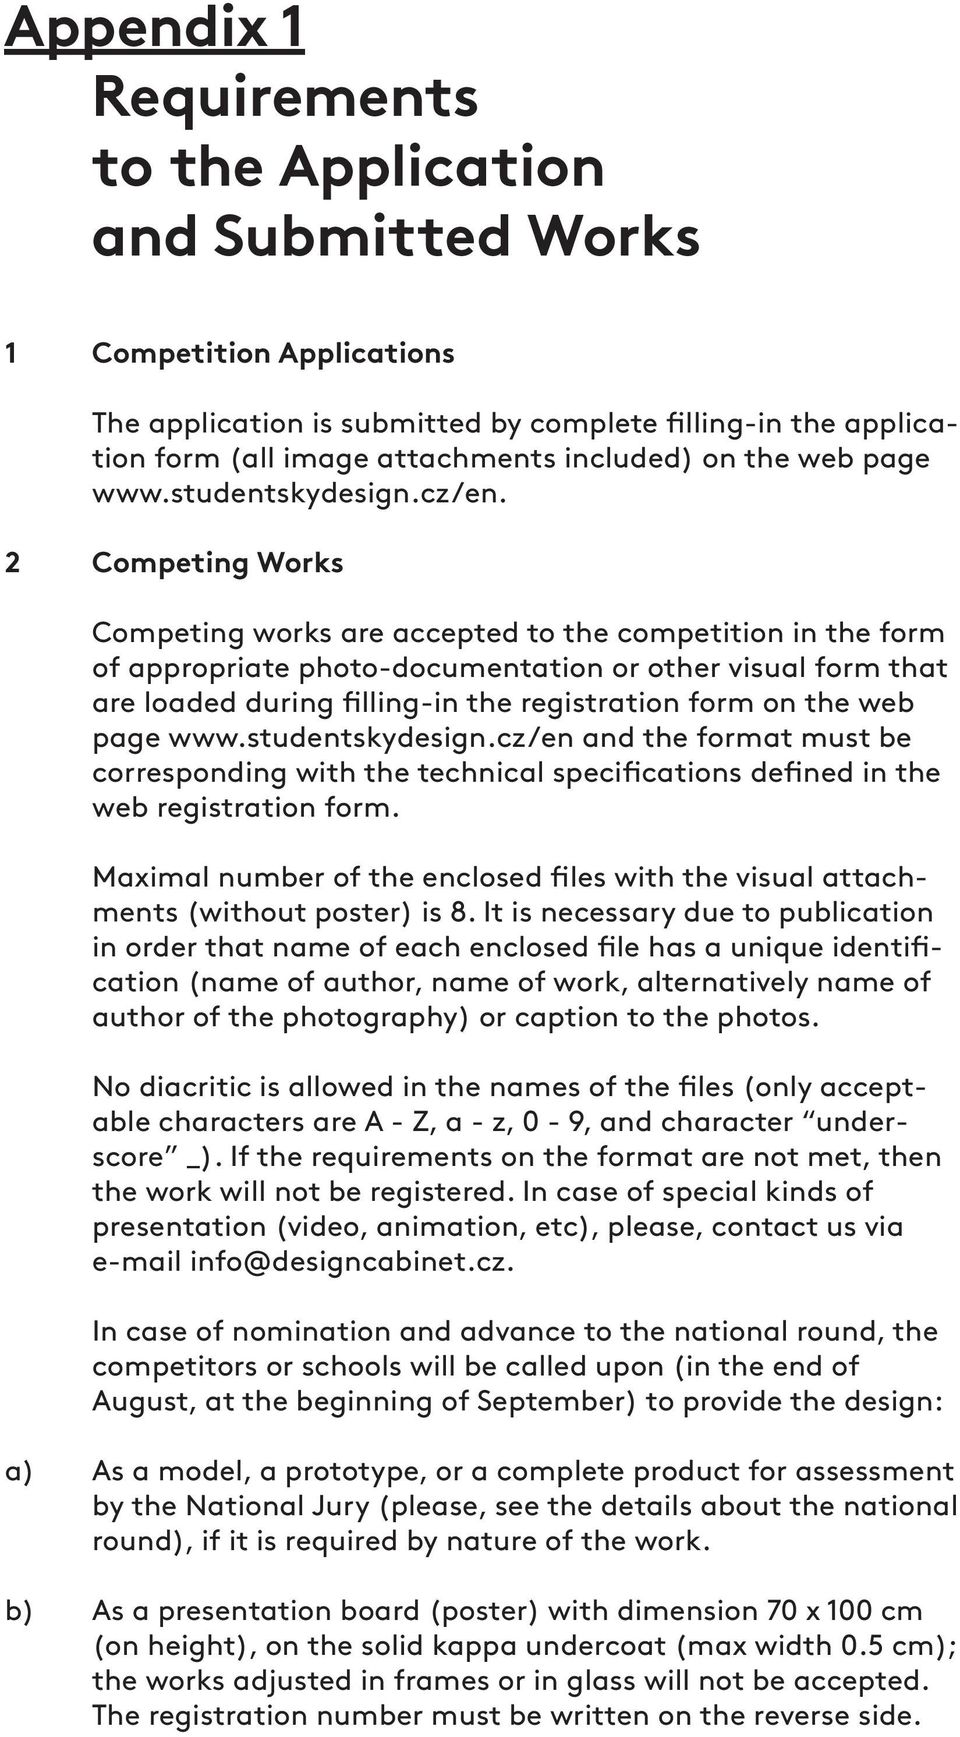 2 Competing Works Competing works are accepted to the competition in the form of appropriate photo-documentation or other visual form that are loaded during filling-in the registration form on the